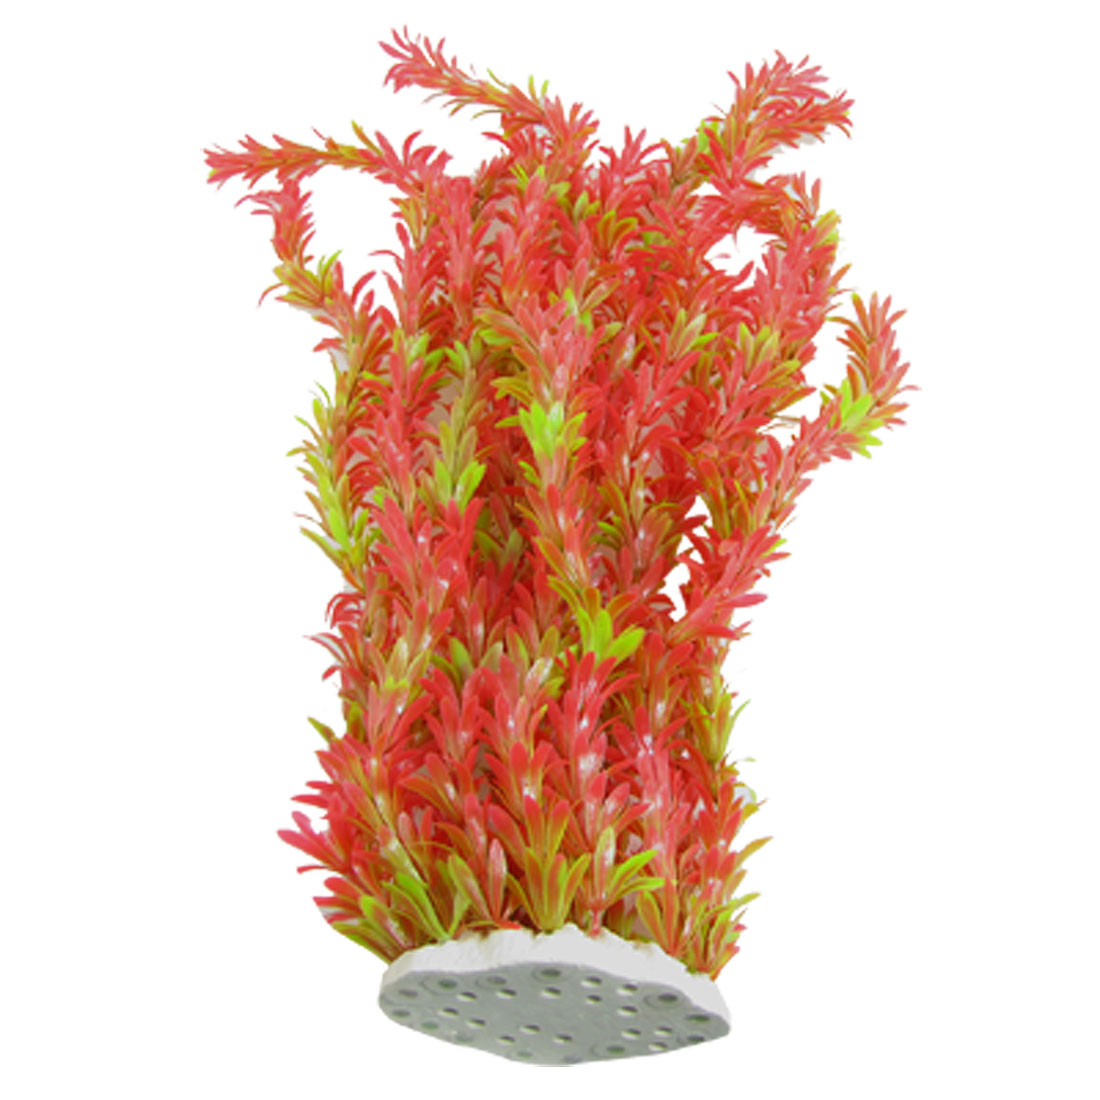 Aquarium Fish Tank Red Green Long Plastic Plants w Ceramic Base